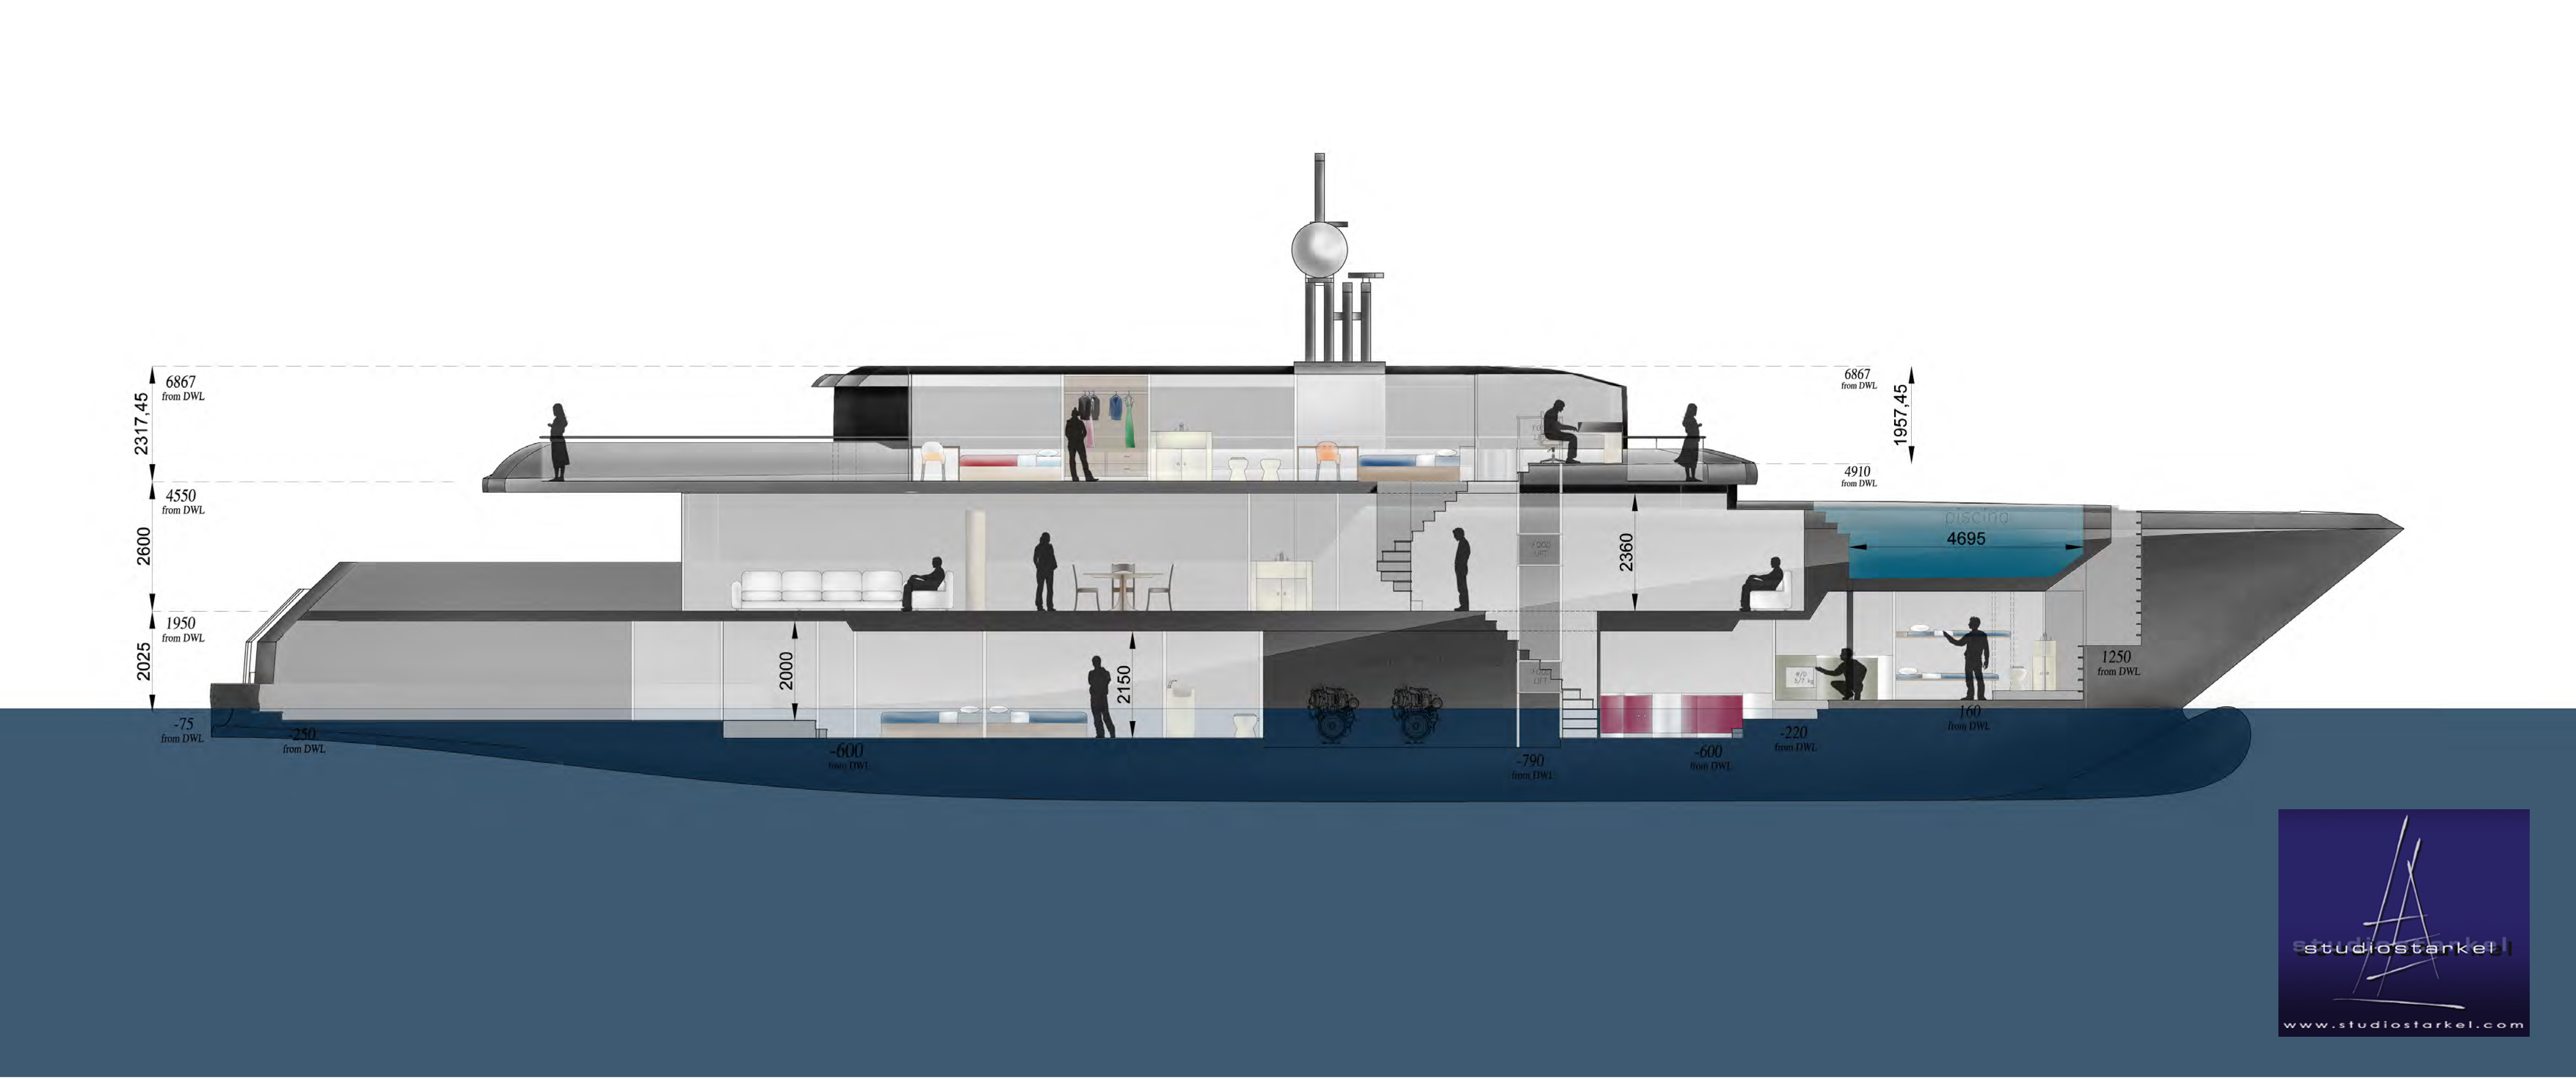 44m Diesel Electric Yacht Concept Developed By Fifth Ocean